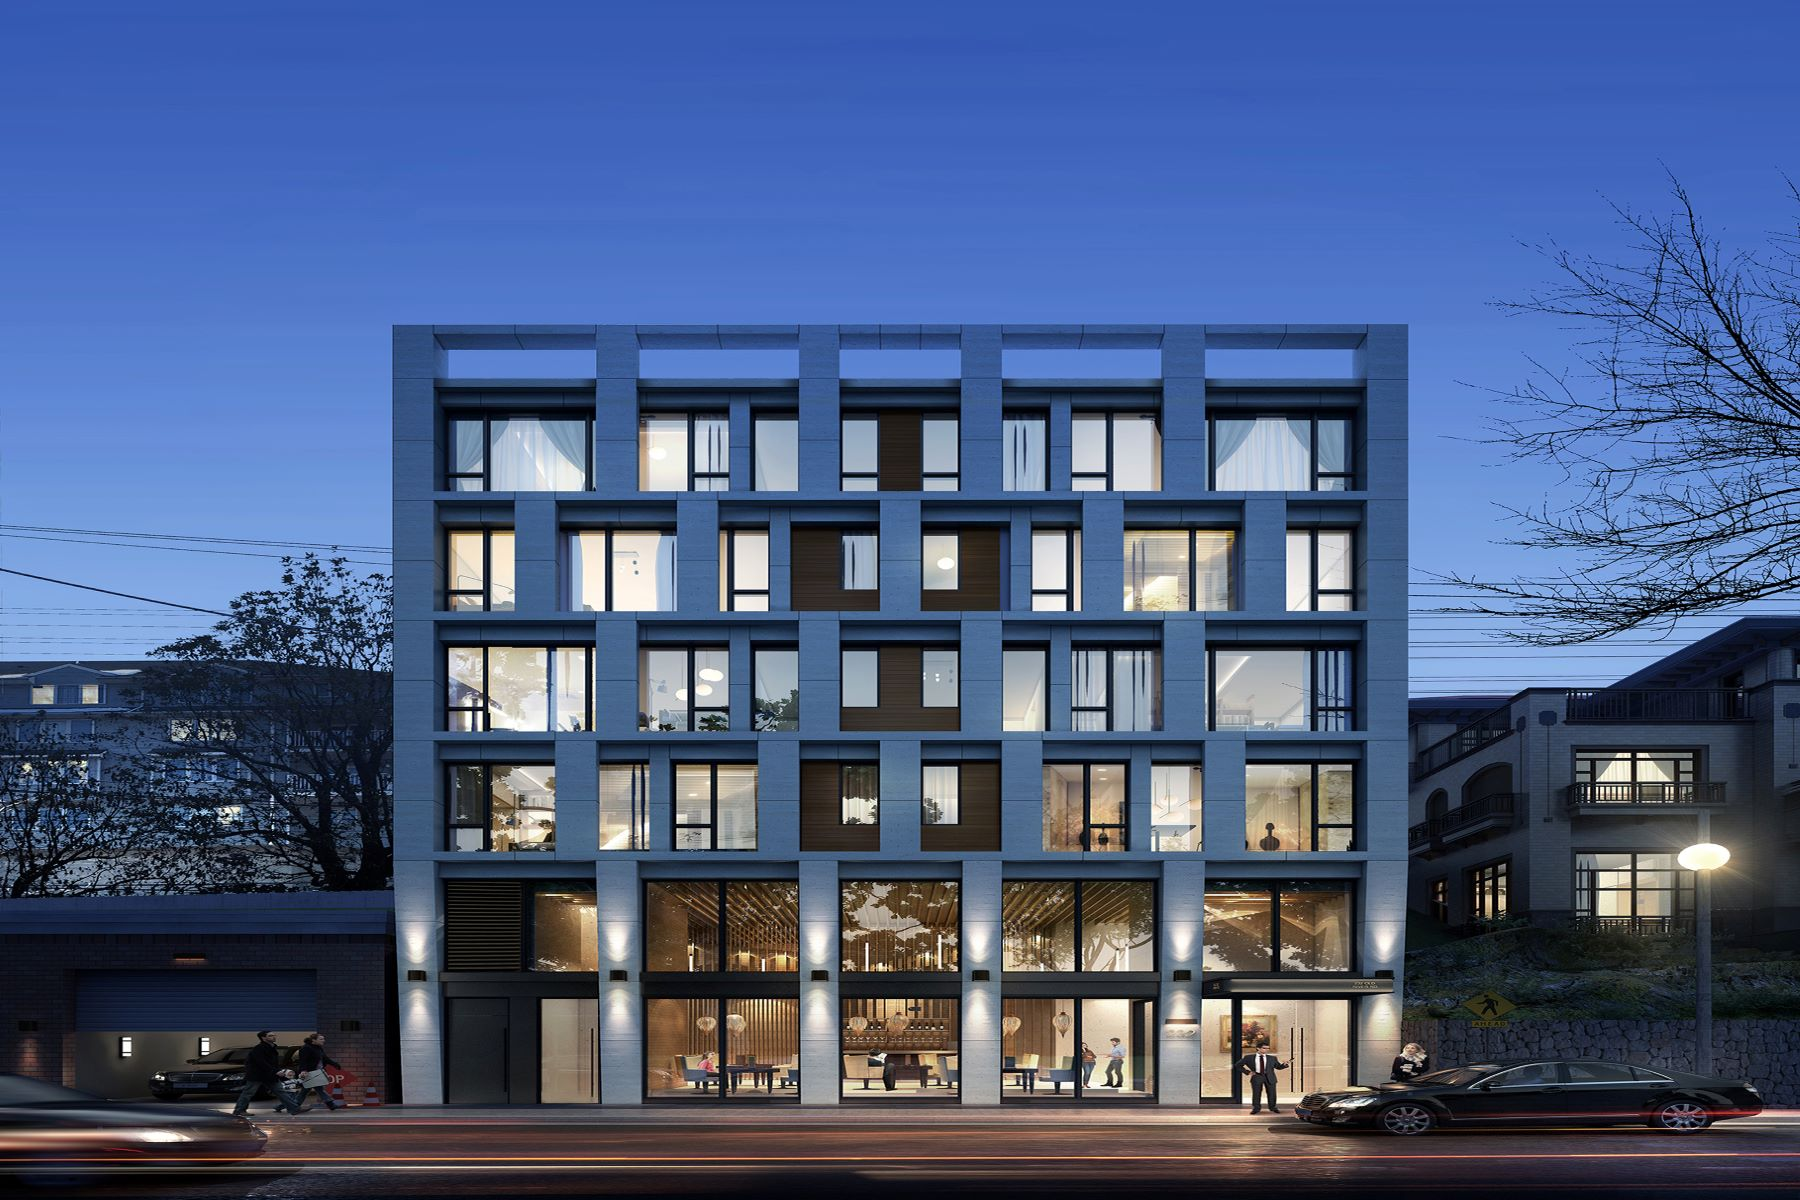 Condominiums for Sale at NEW CONSTRUCTION BUILDING! HOW ABOUT TO OWN A BOUTIQUE BUILDING. 232 Old River Road, Edgewater, New Jersey 07020 United States